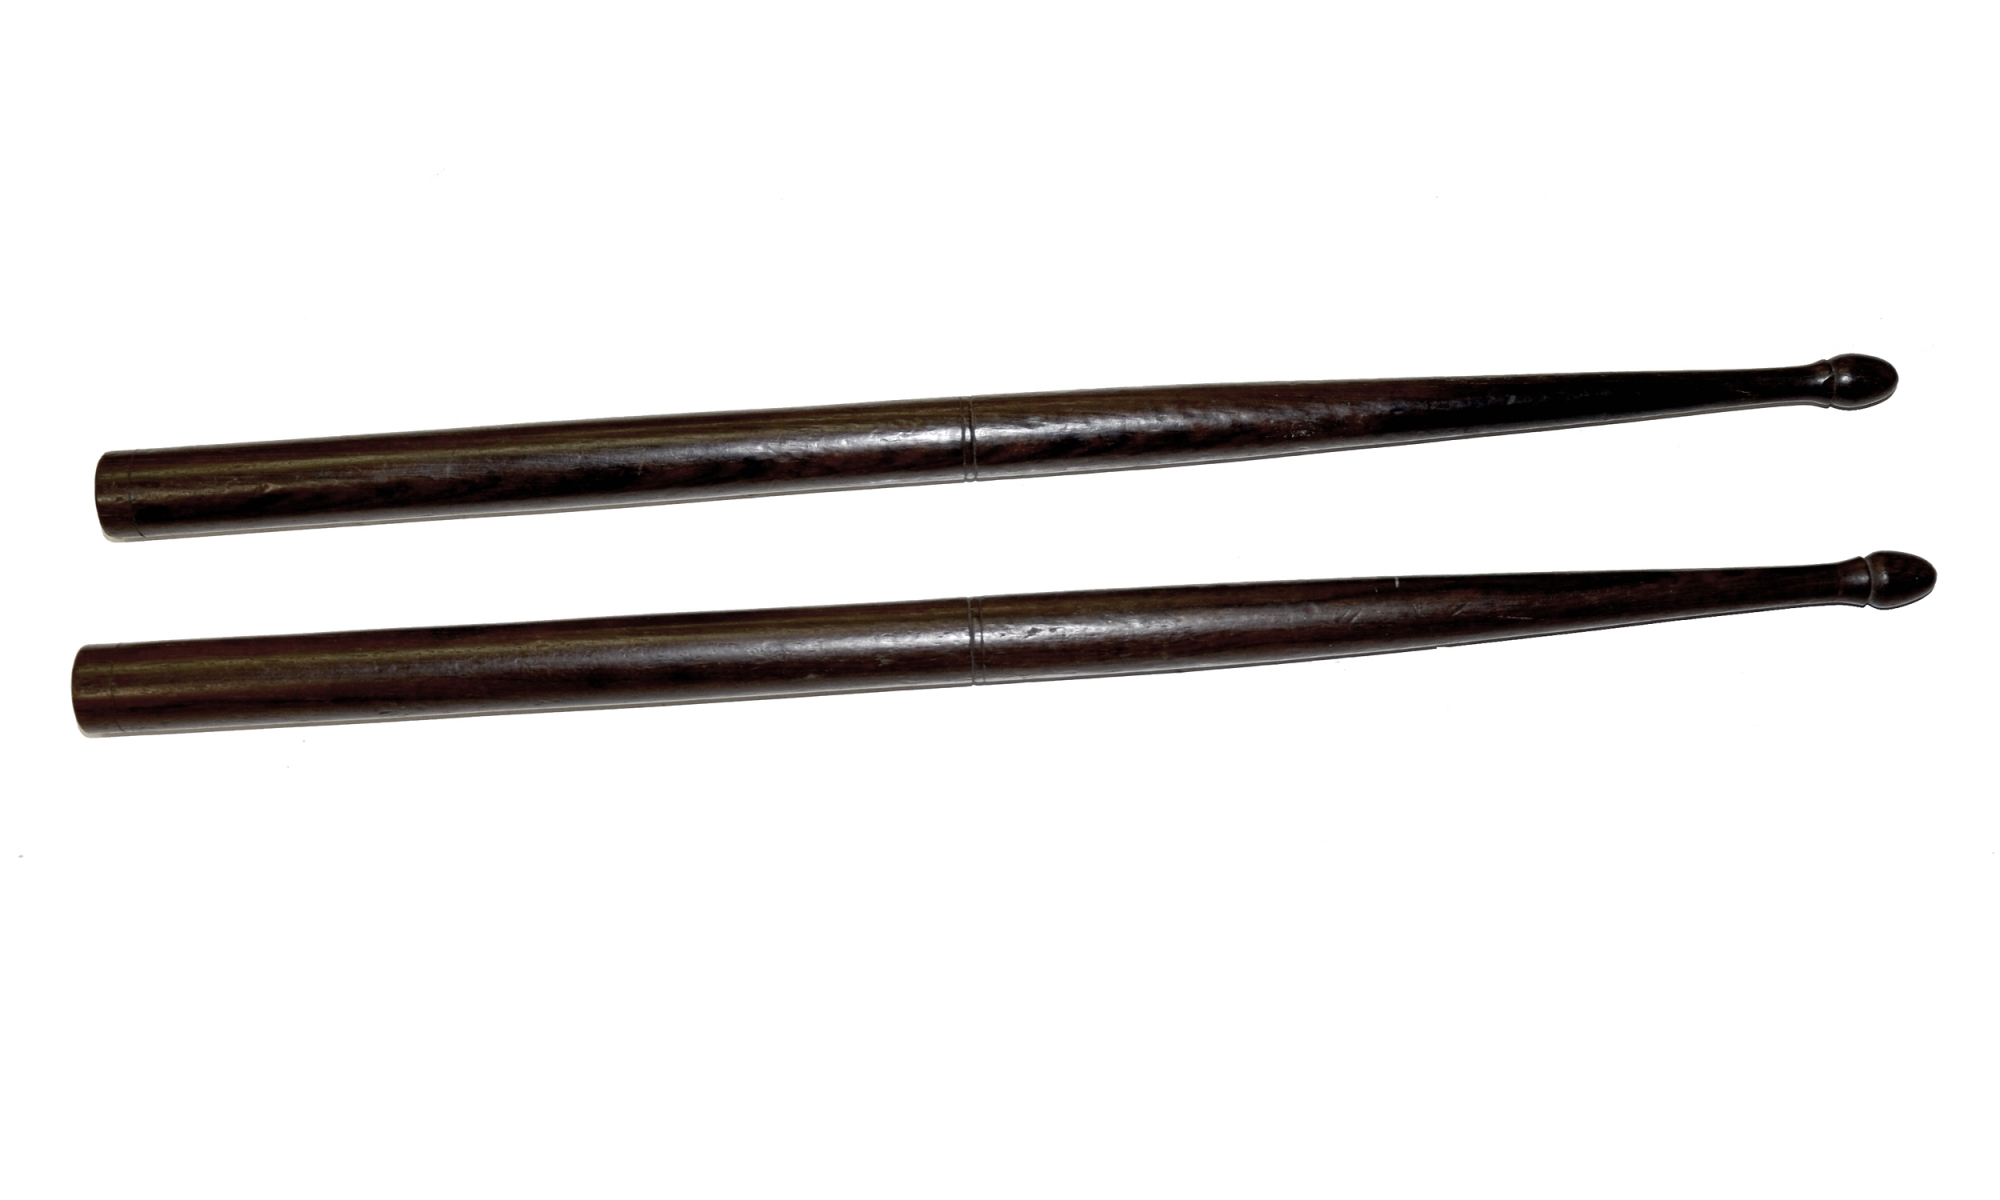 CIVIL WAR DRUMSTICKS